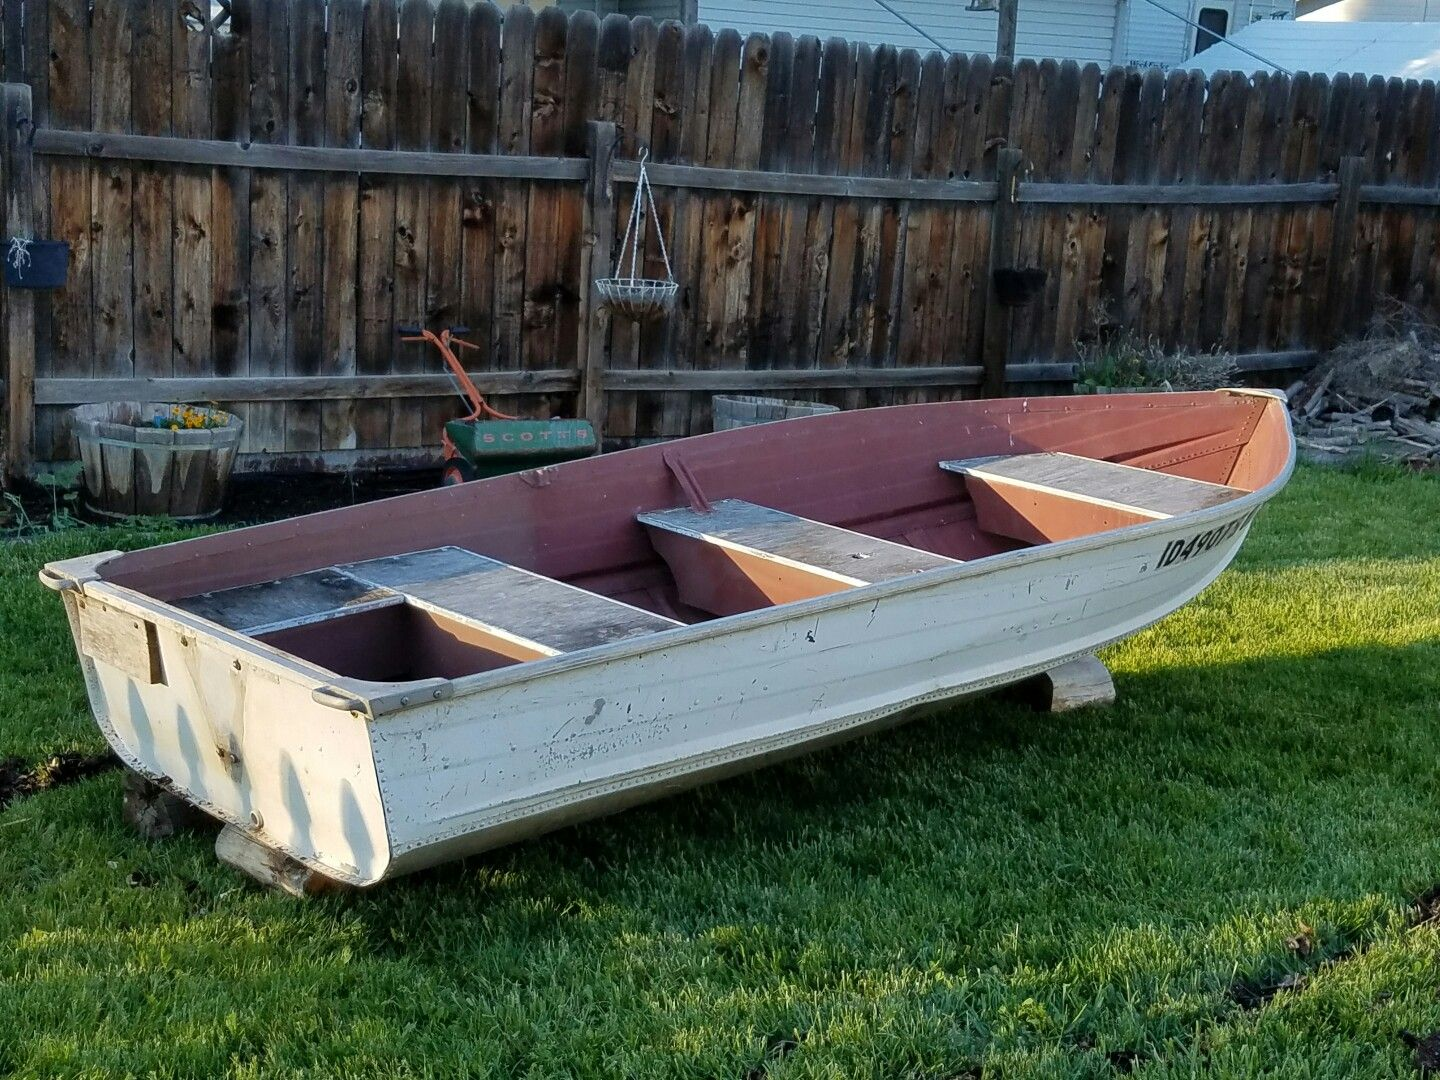 Our 12 Ft Aluminum Fishing Boat Before Sanding And Painting Seats Swab The Deck Pinterest